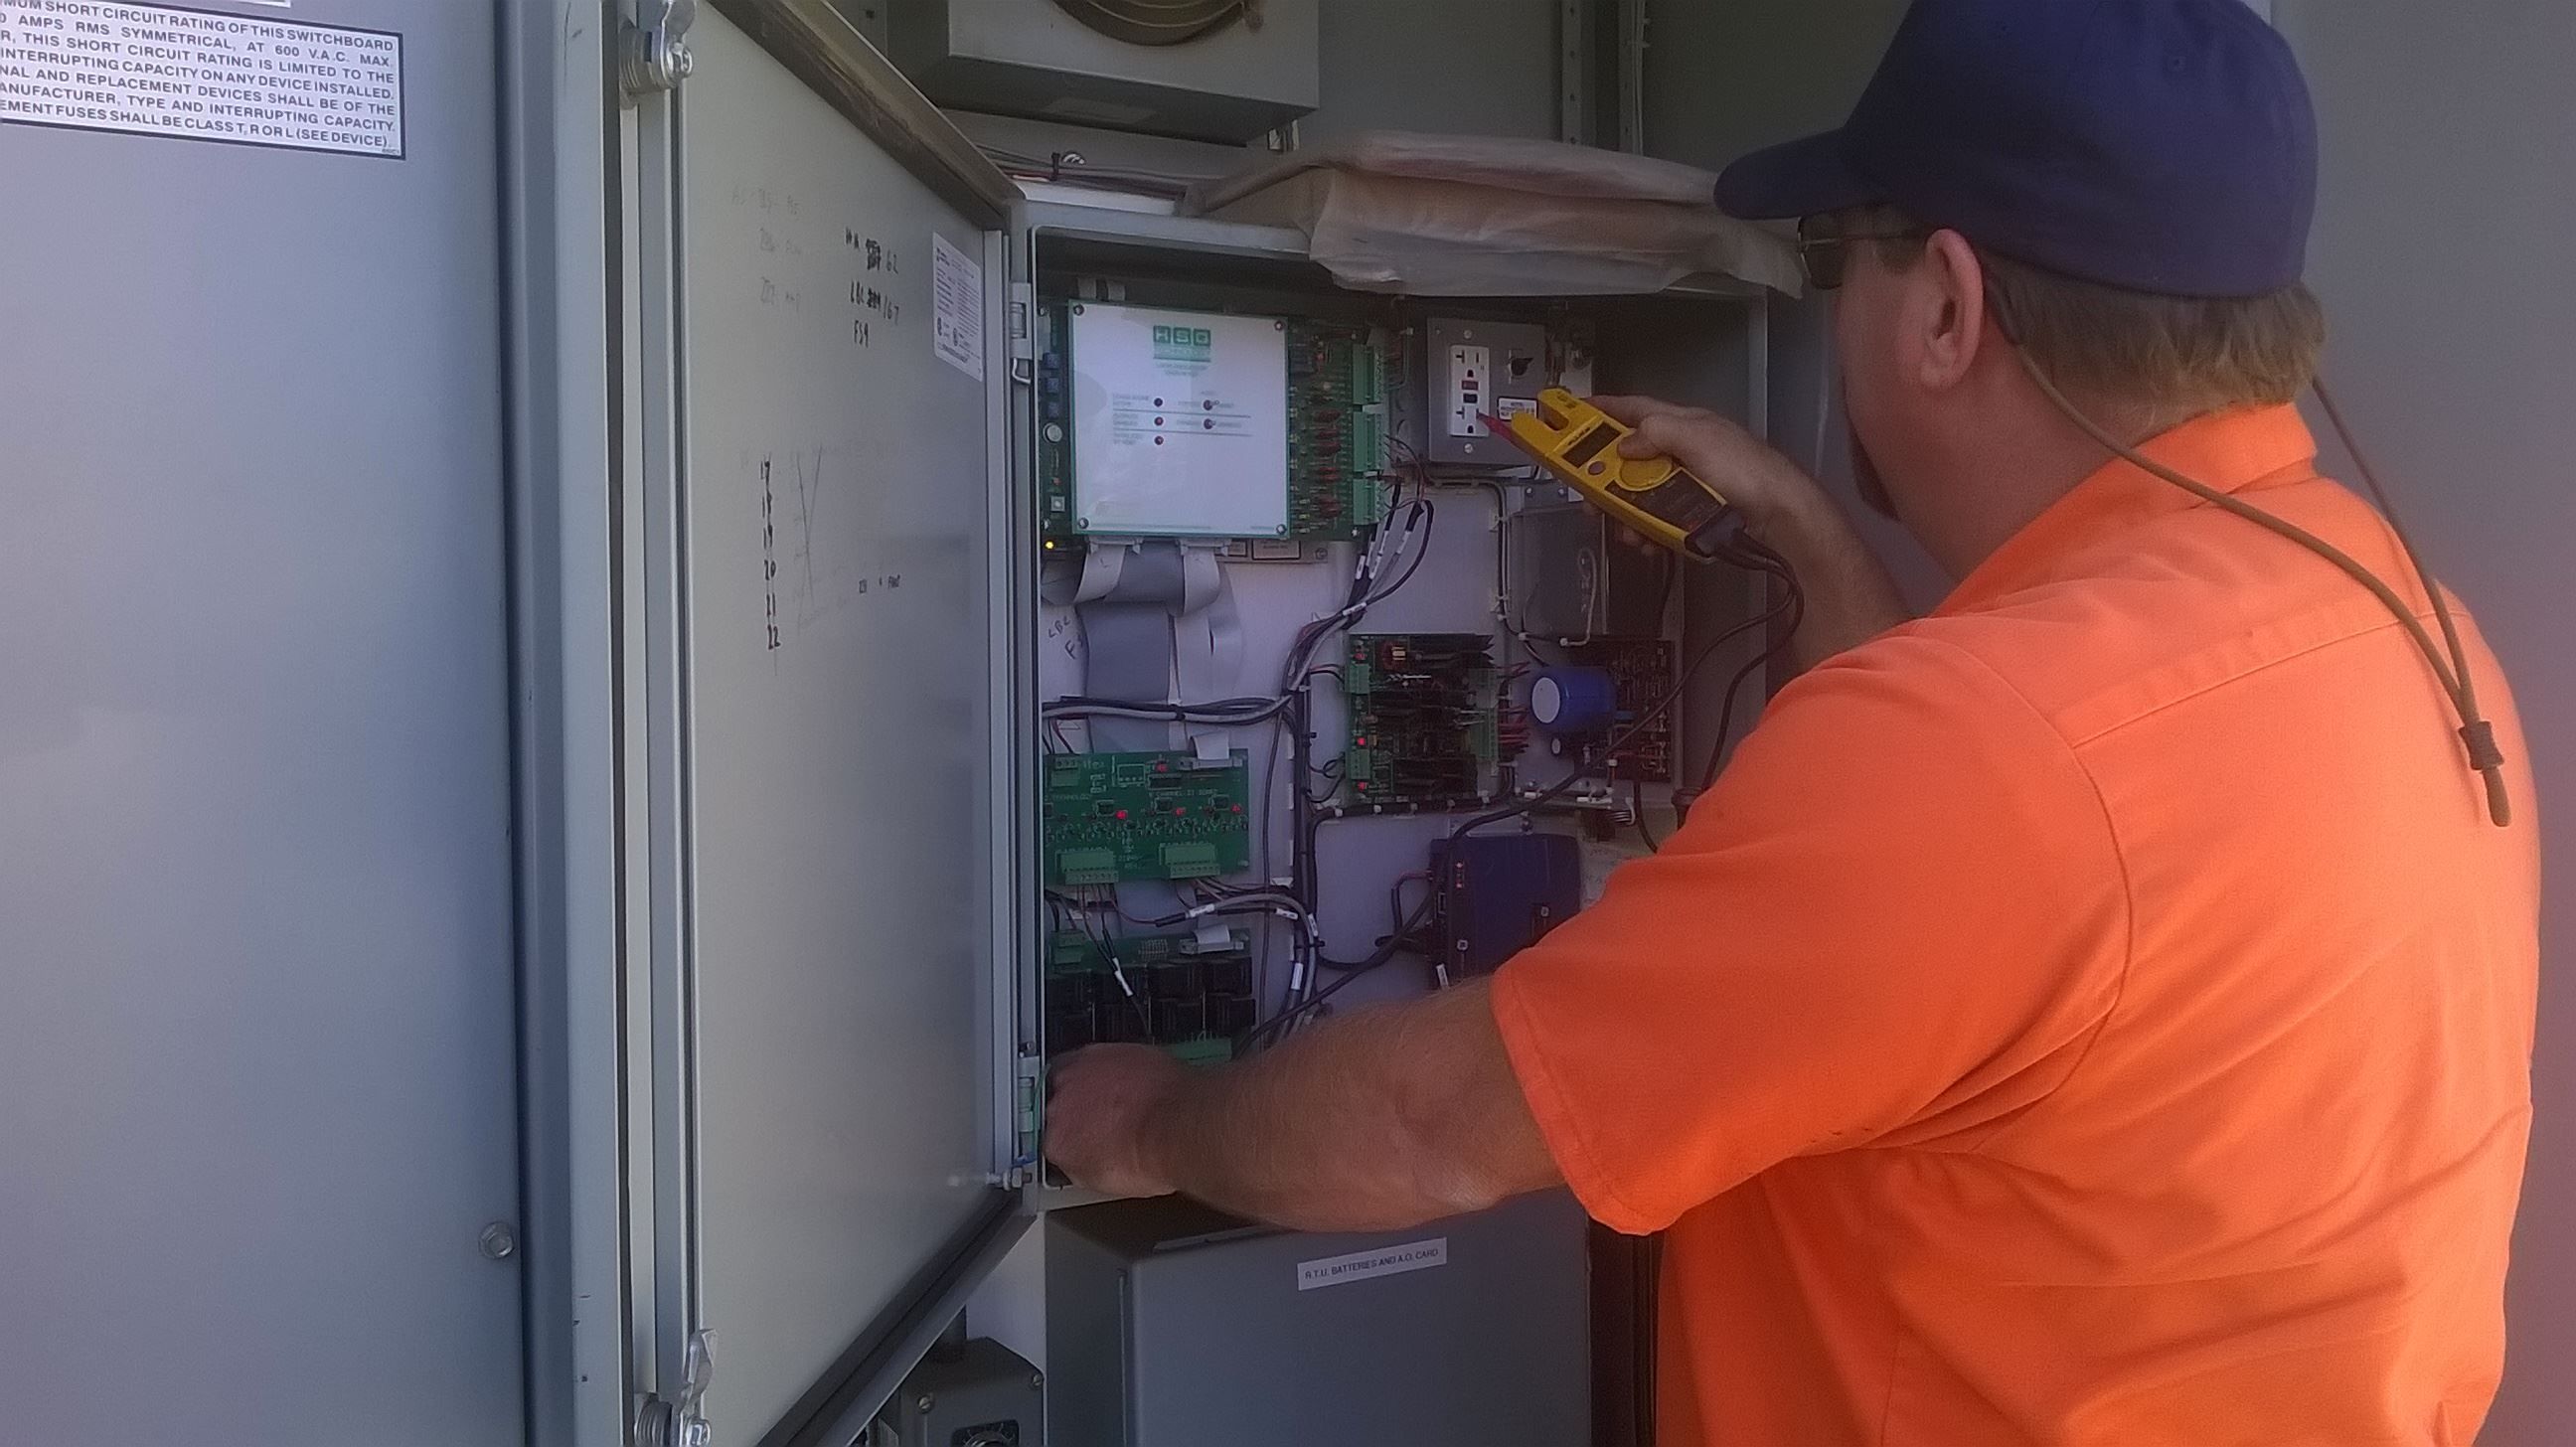 city worker tests power levels at water tank electrical box